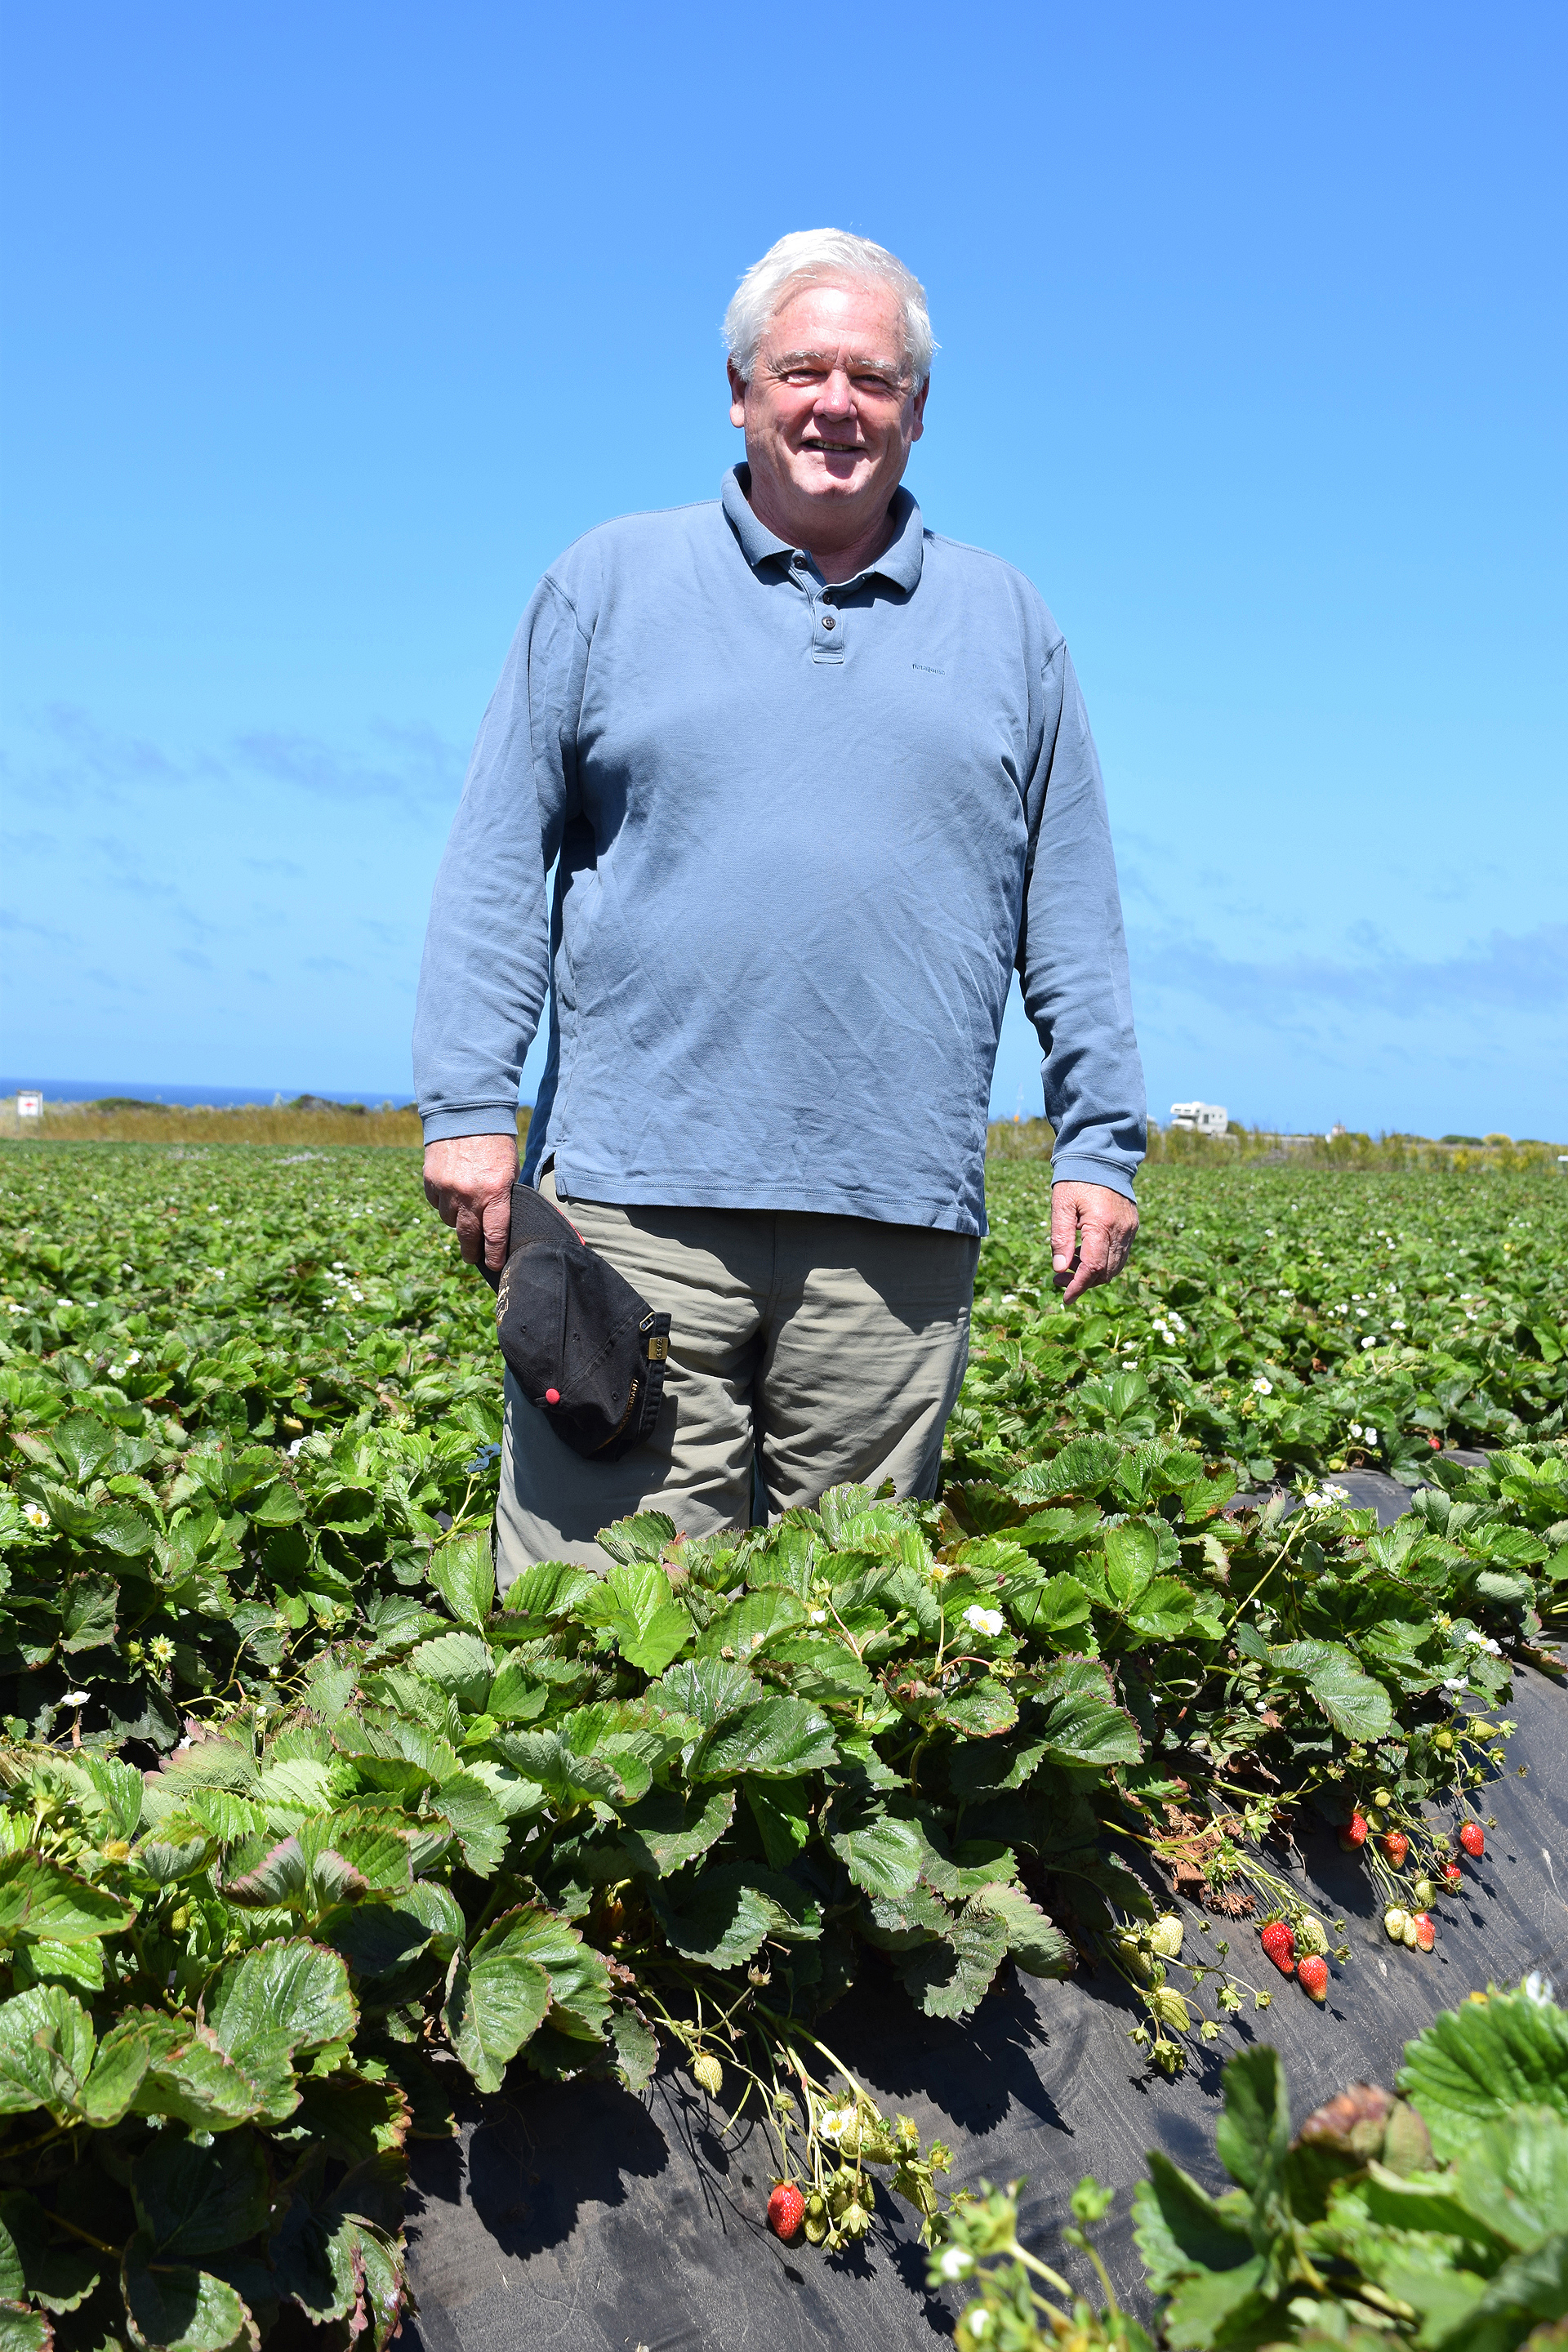 Jim Cochran of Swanton Berry Farm was California's first organic strawberry grower and produces some of the tastiest berries in the state.